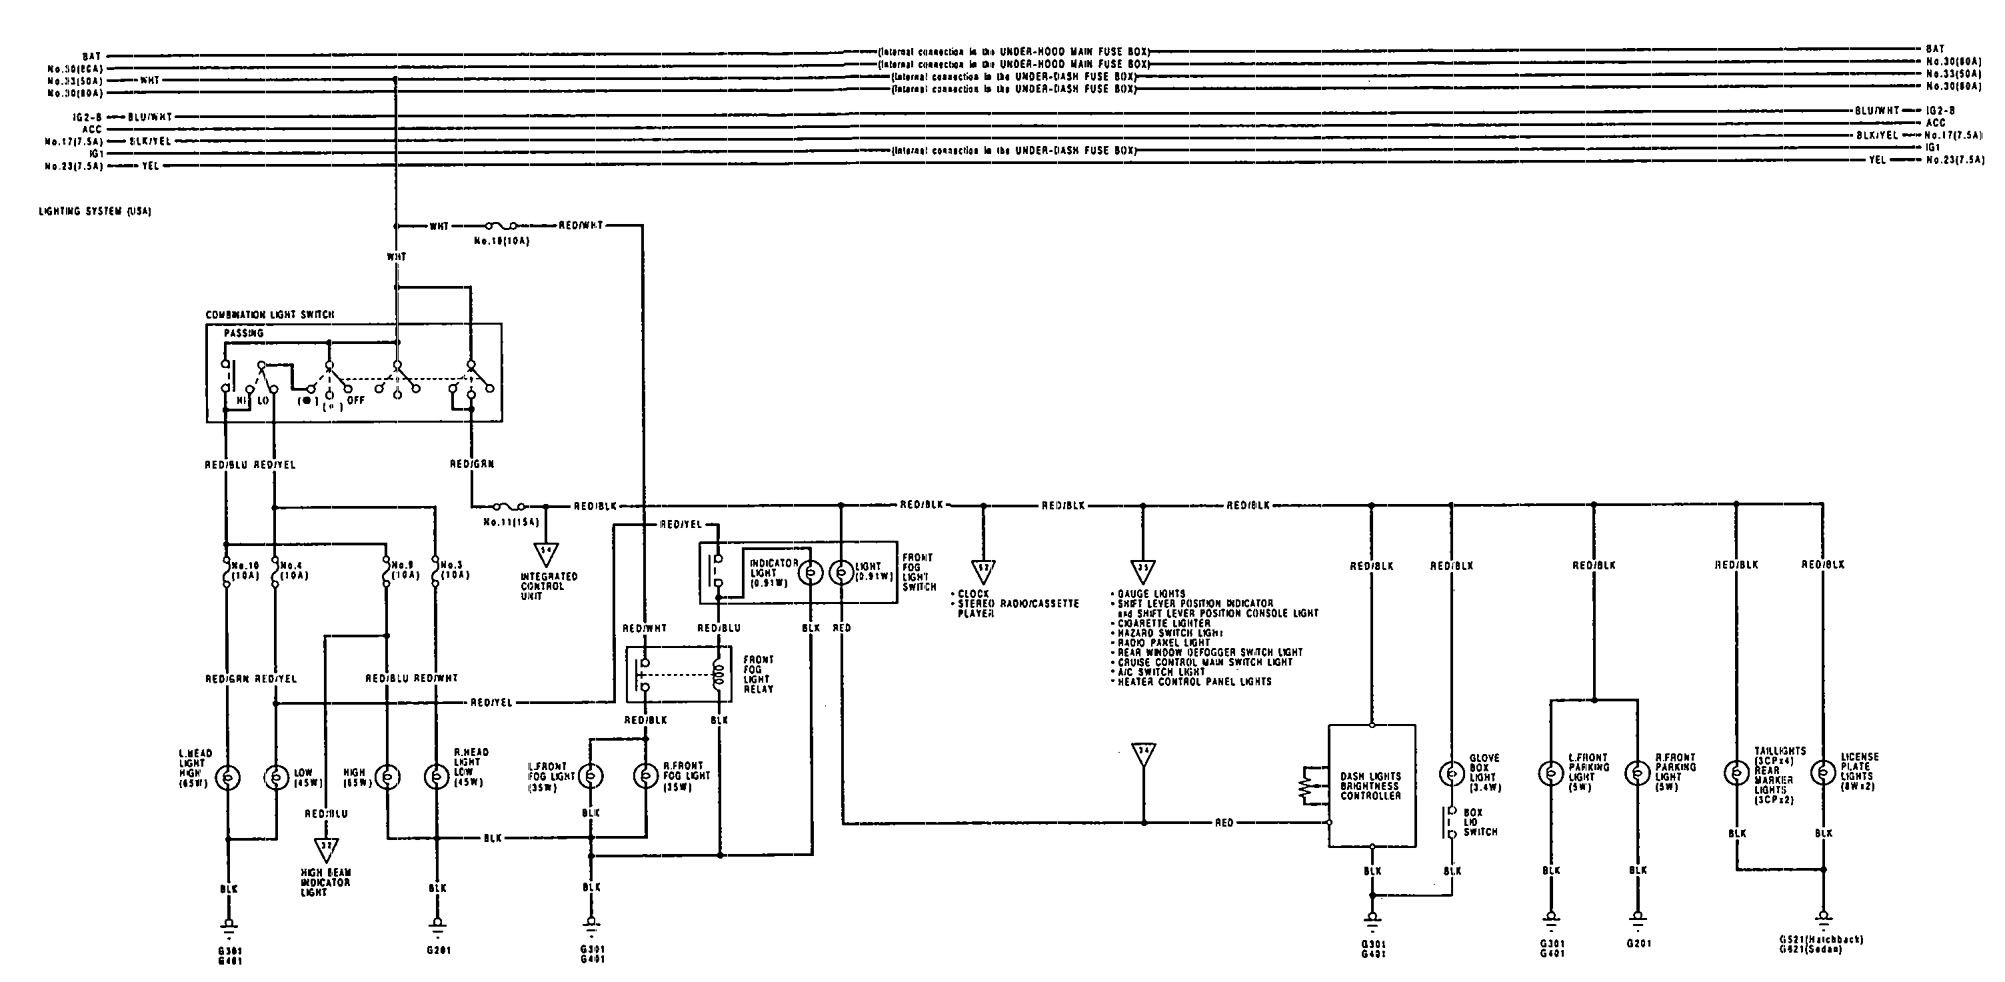 Acura Integra (1992) - wiring diagrams - reverse lamp - Carknowledge.infoCarknowledge.info